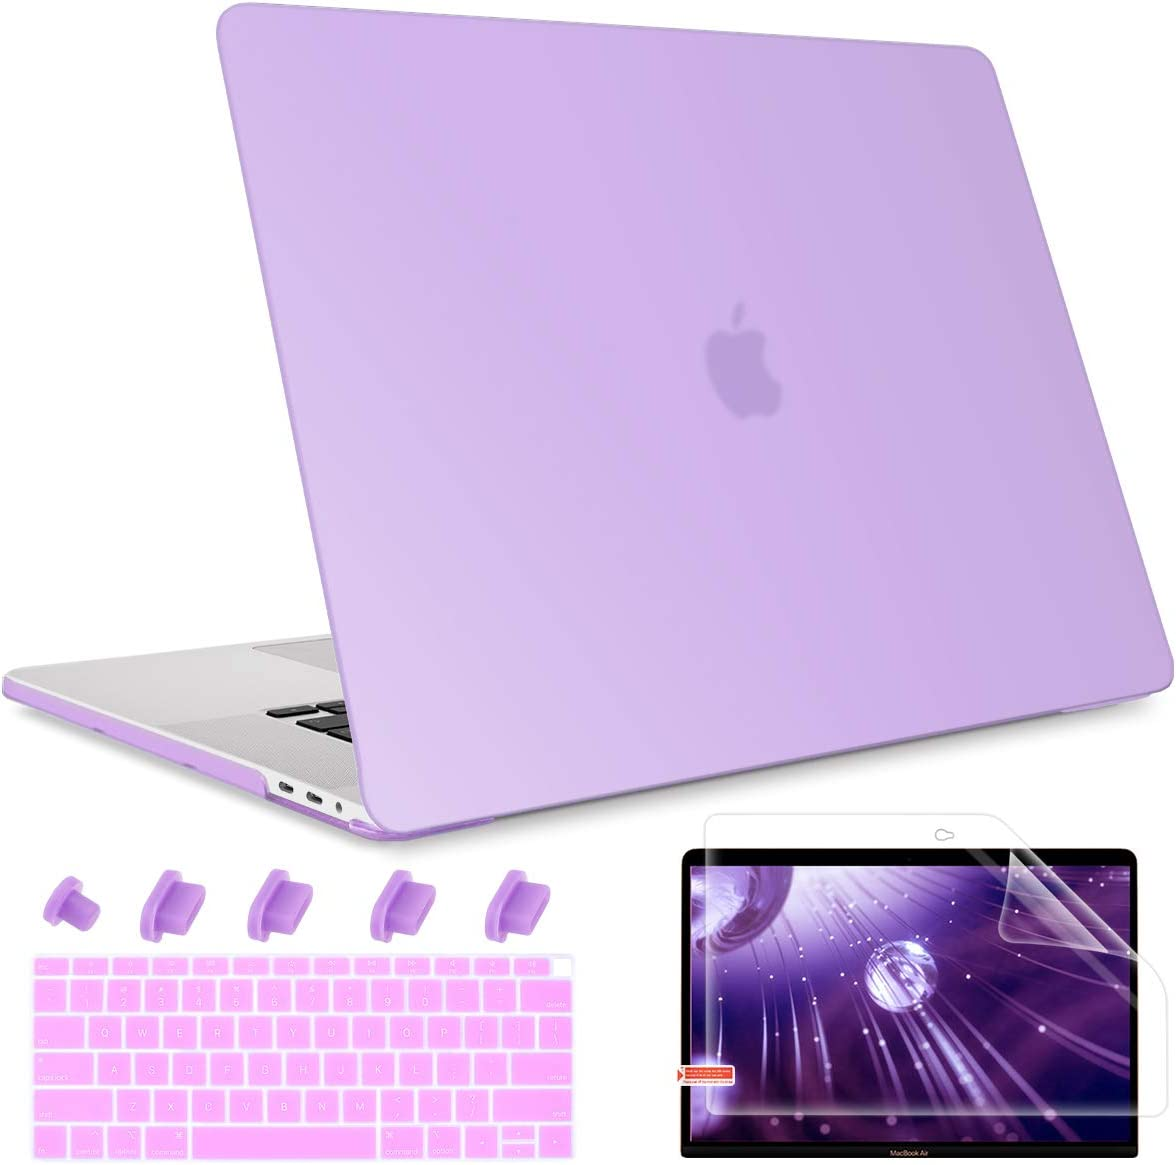 May Chen MacBook Air 13 Inch Matte Clear Case A1932 A2179 (2018 2019 2020 Release), Plastic Hard Shell Case Cover Keyboard Cover For New Mac Air 13